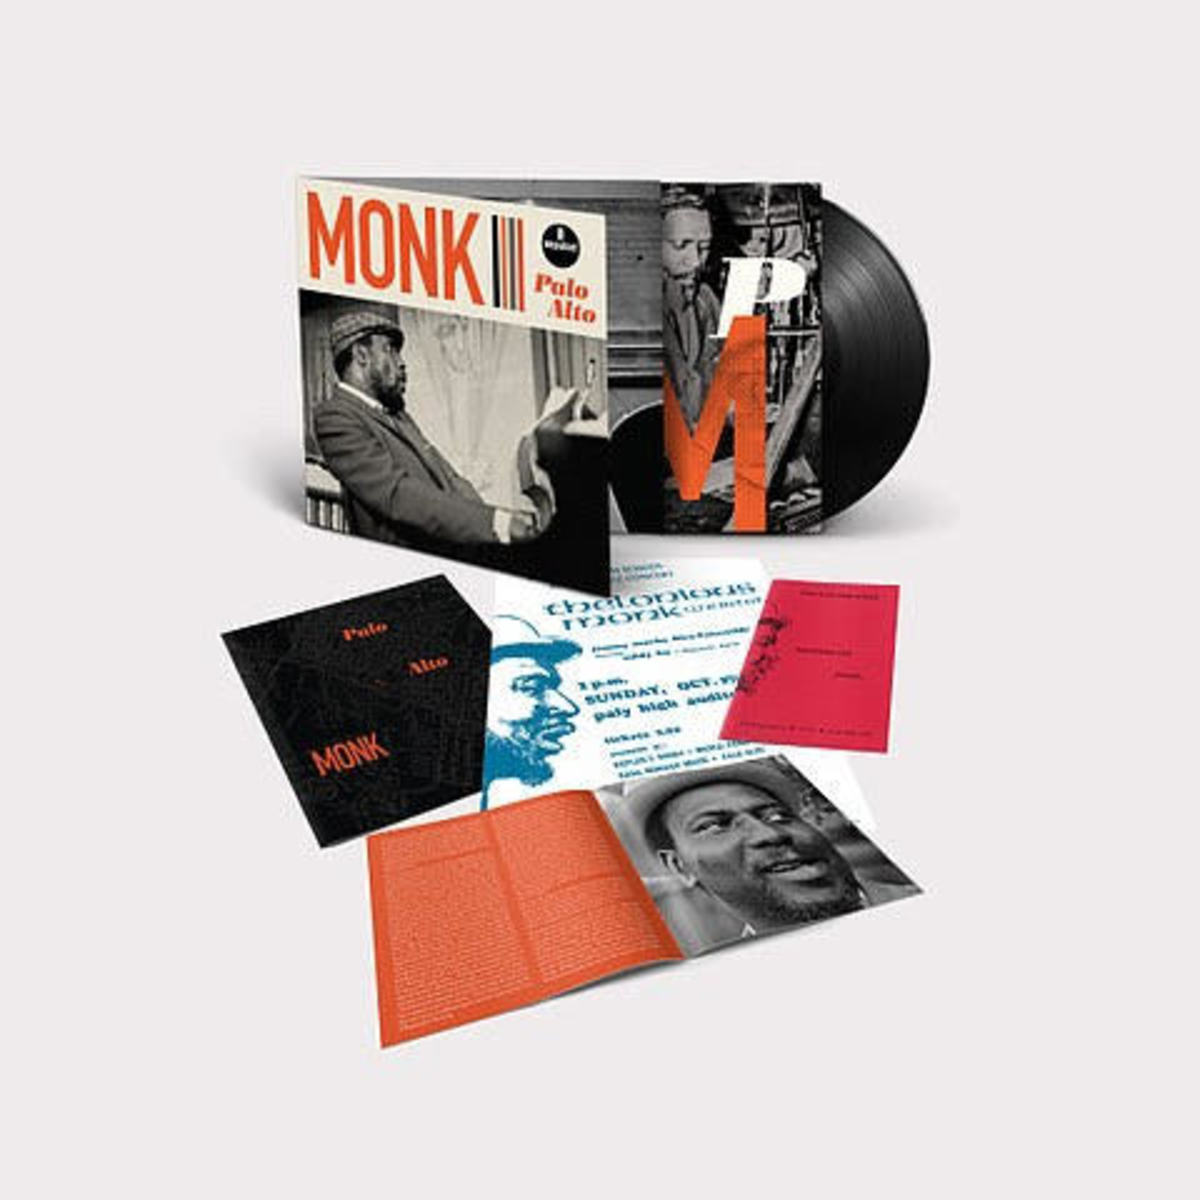 Monk: Palo Alto was remastered by Grandmixer DXT and released a few months ago